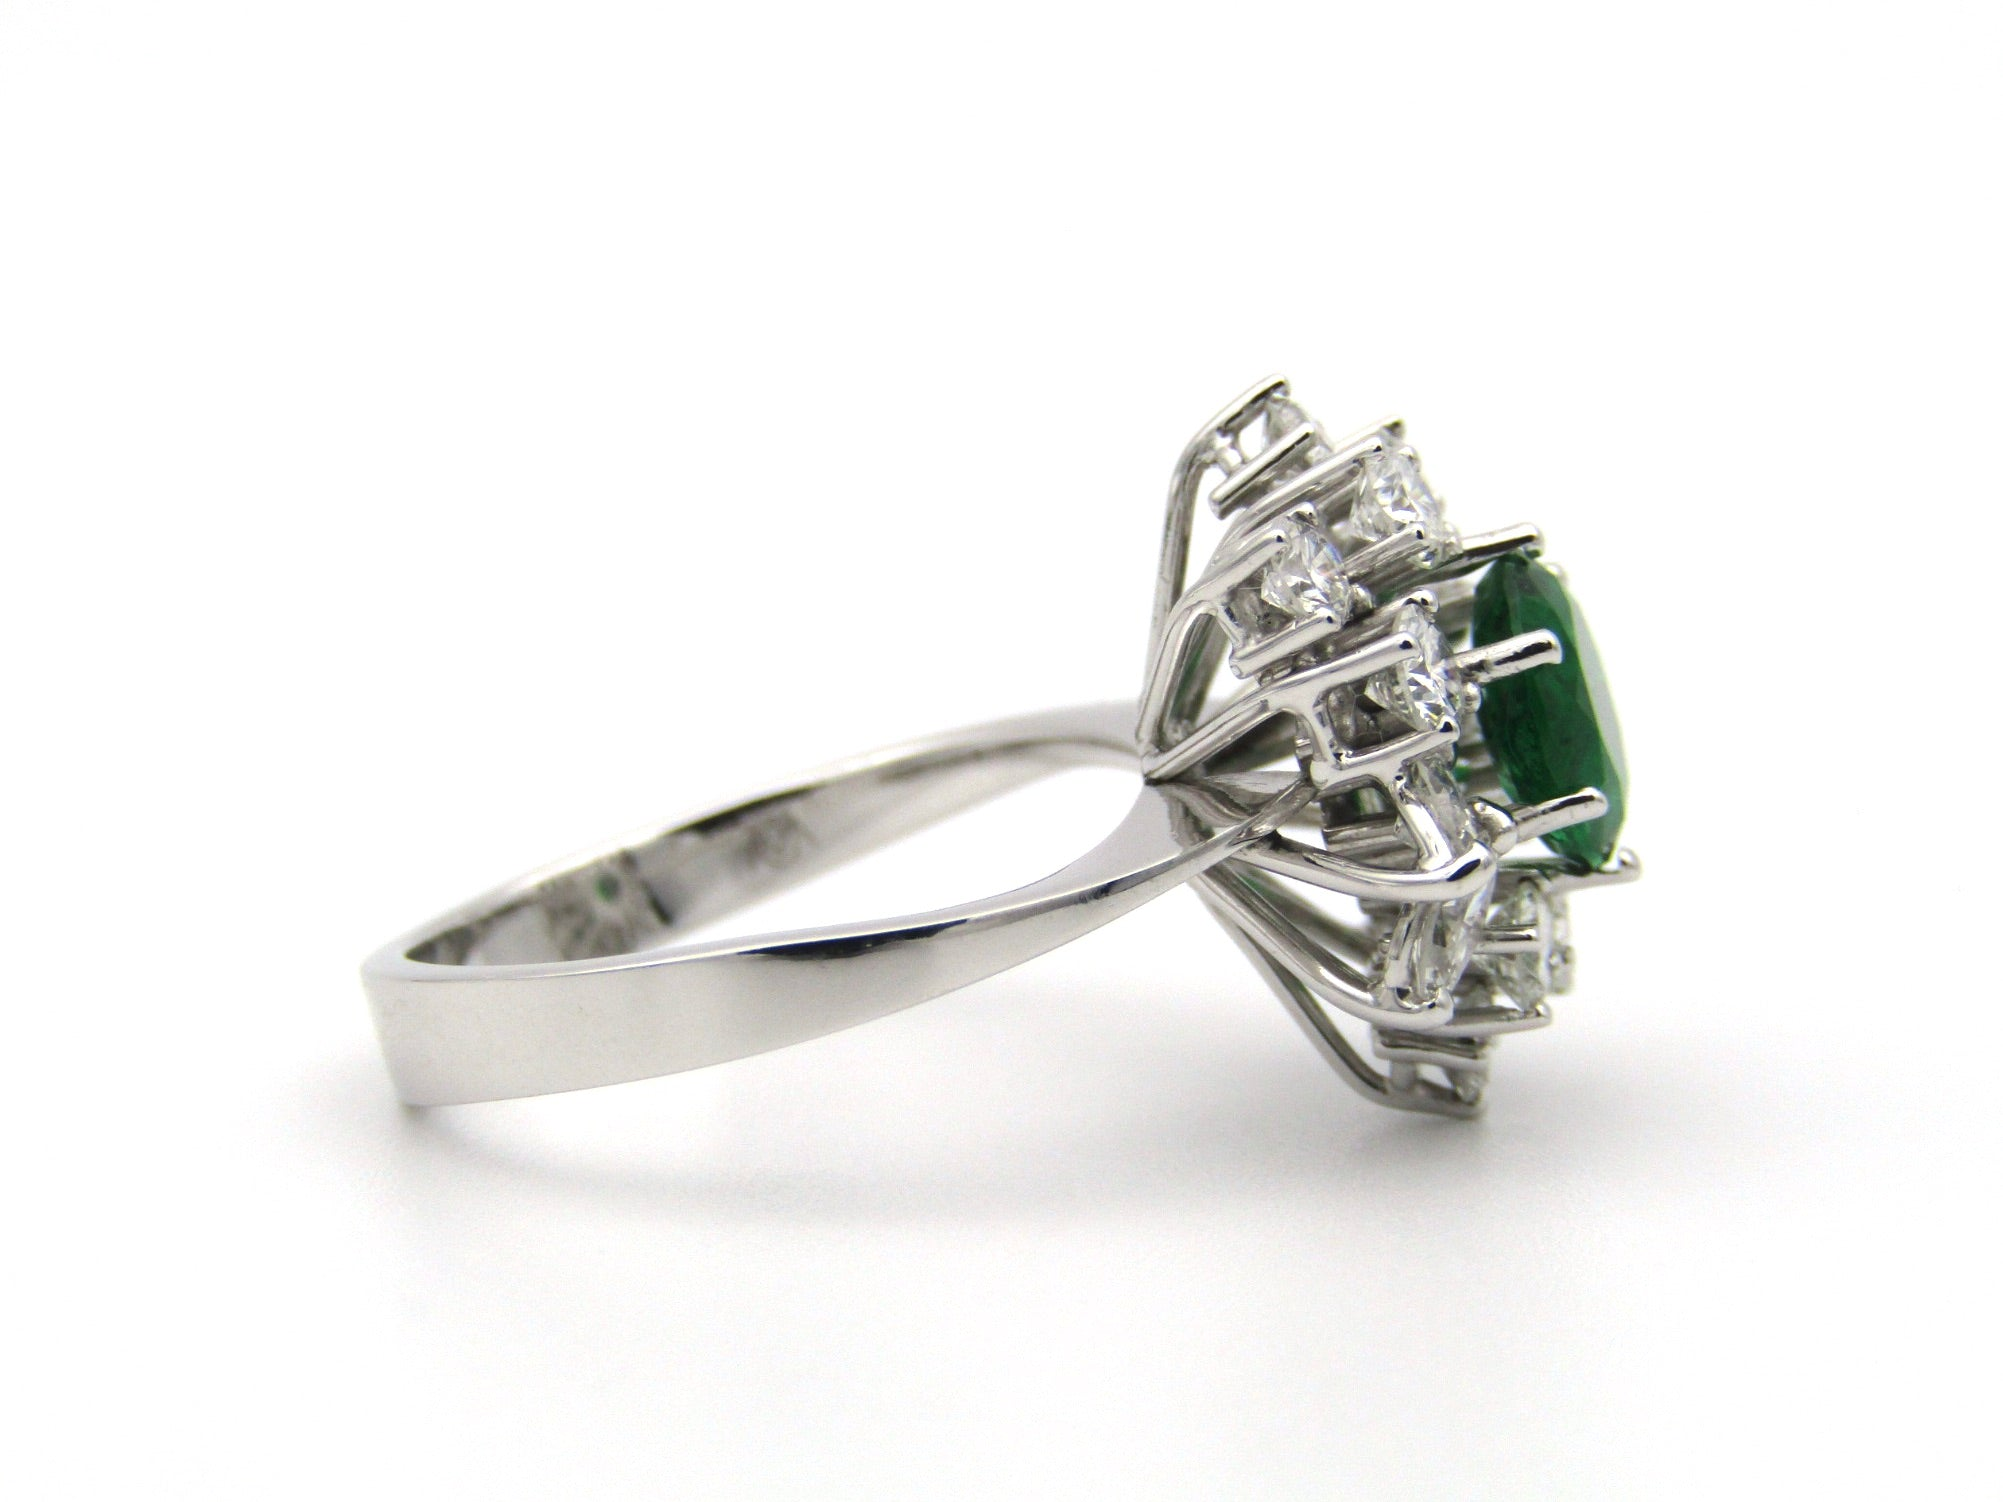 18K gold emerald and diamond ring.